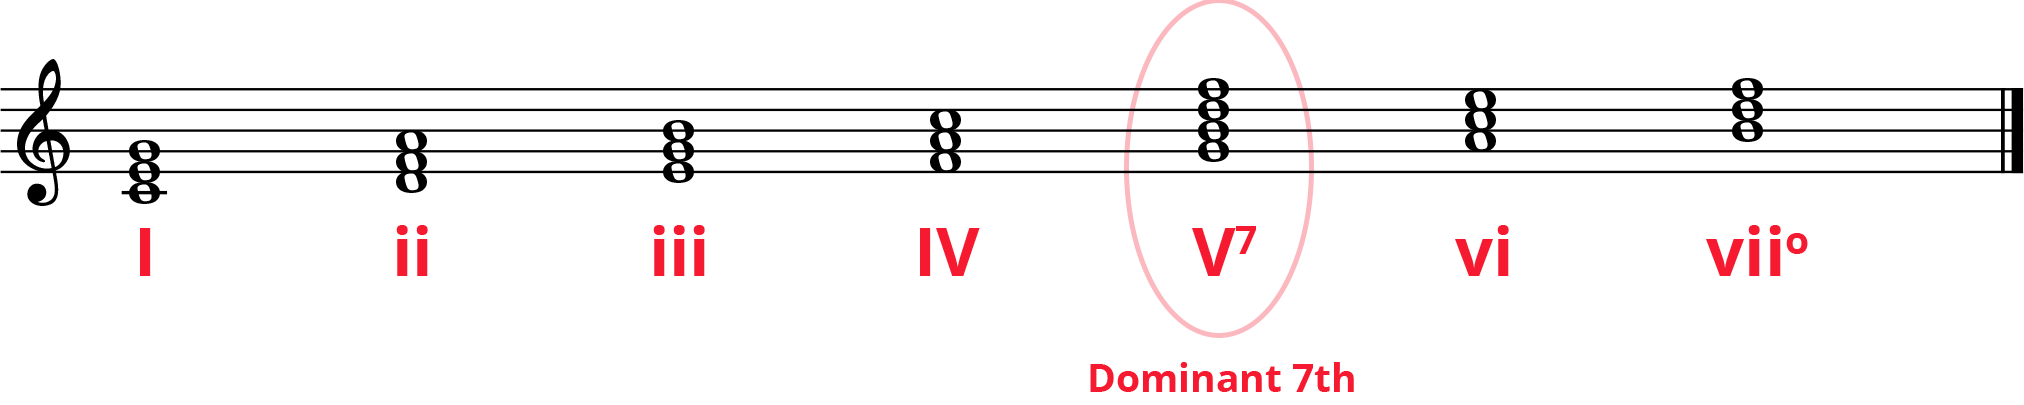 C Major diatonic chords with Roman numerals underneath and V7 (dominant 7th) circled.